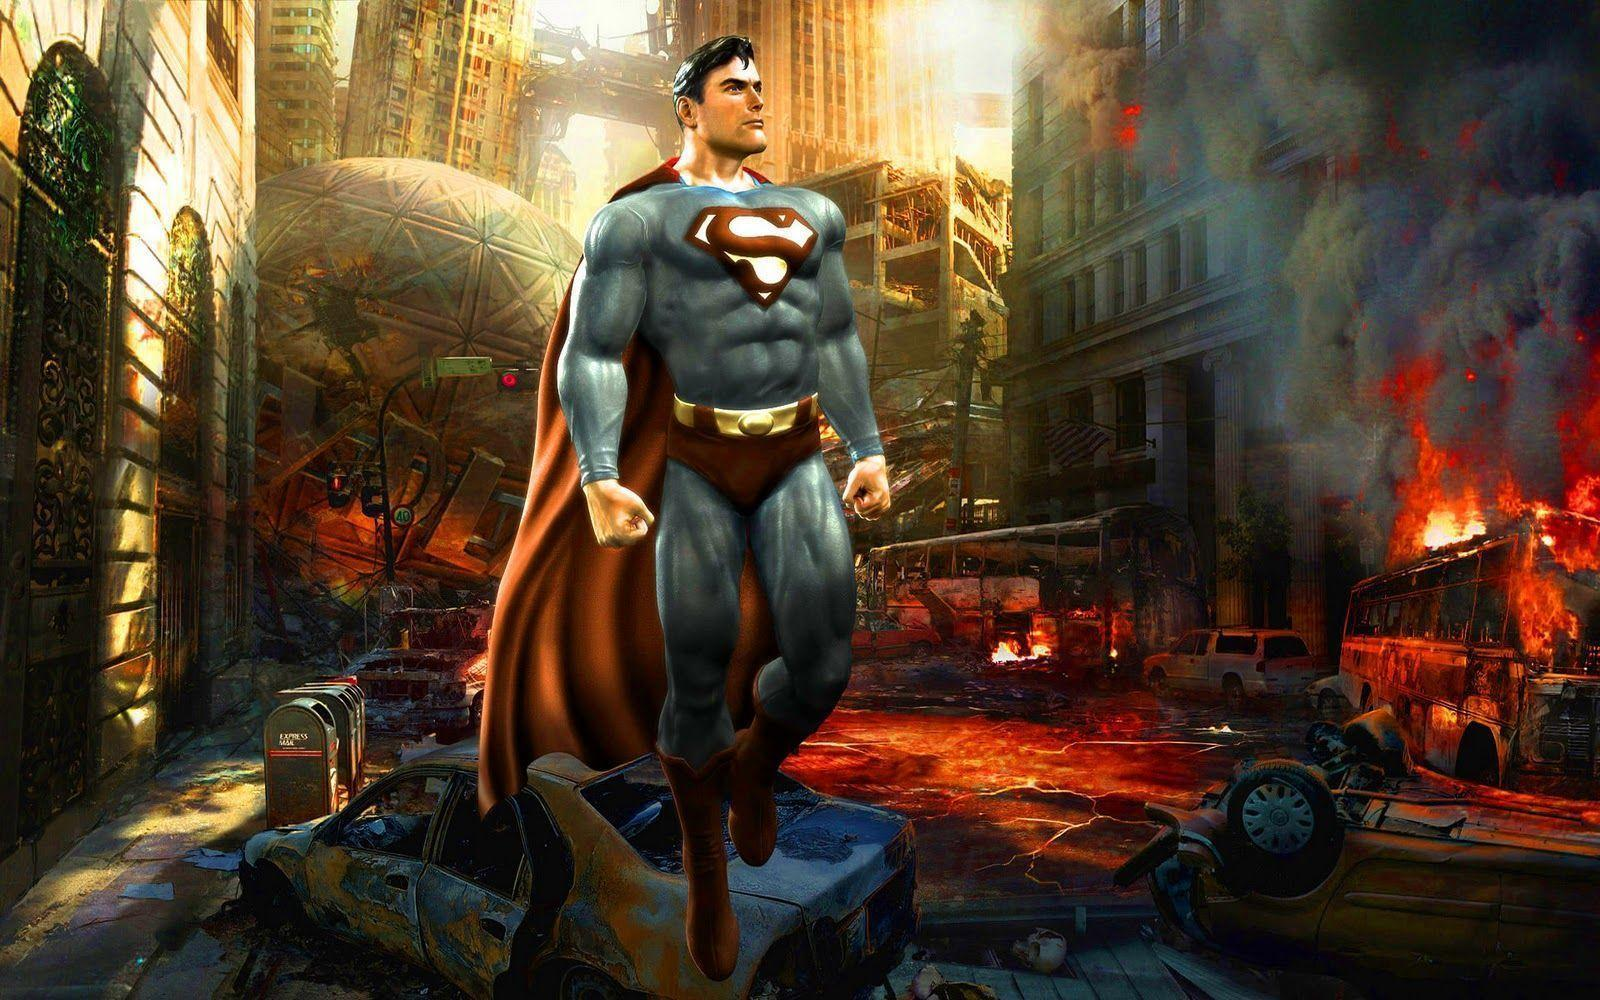 Hd Superman Wallpapers